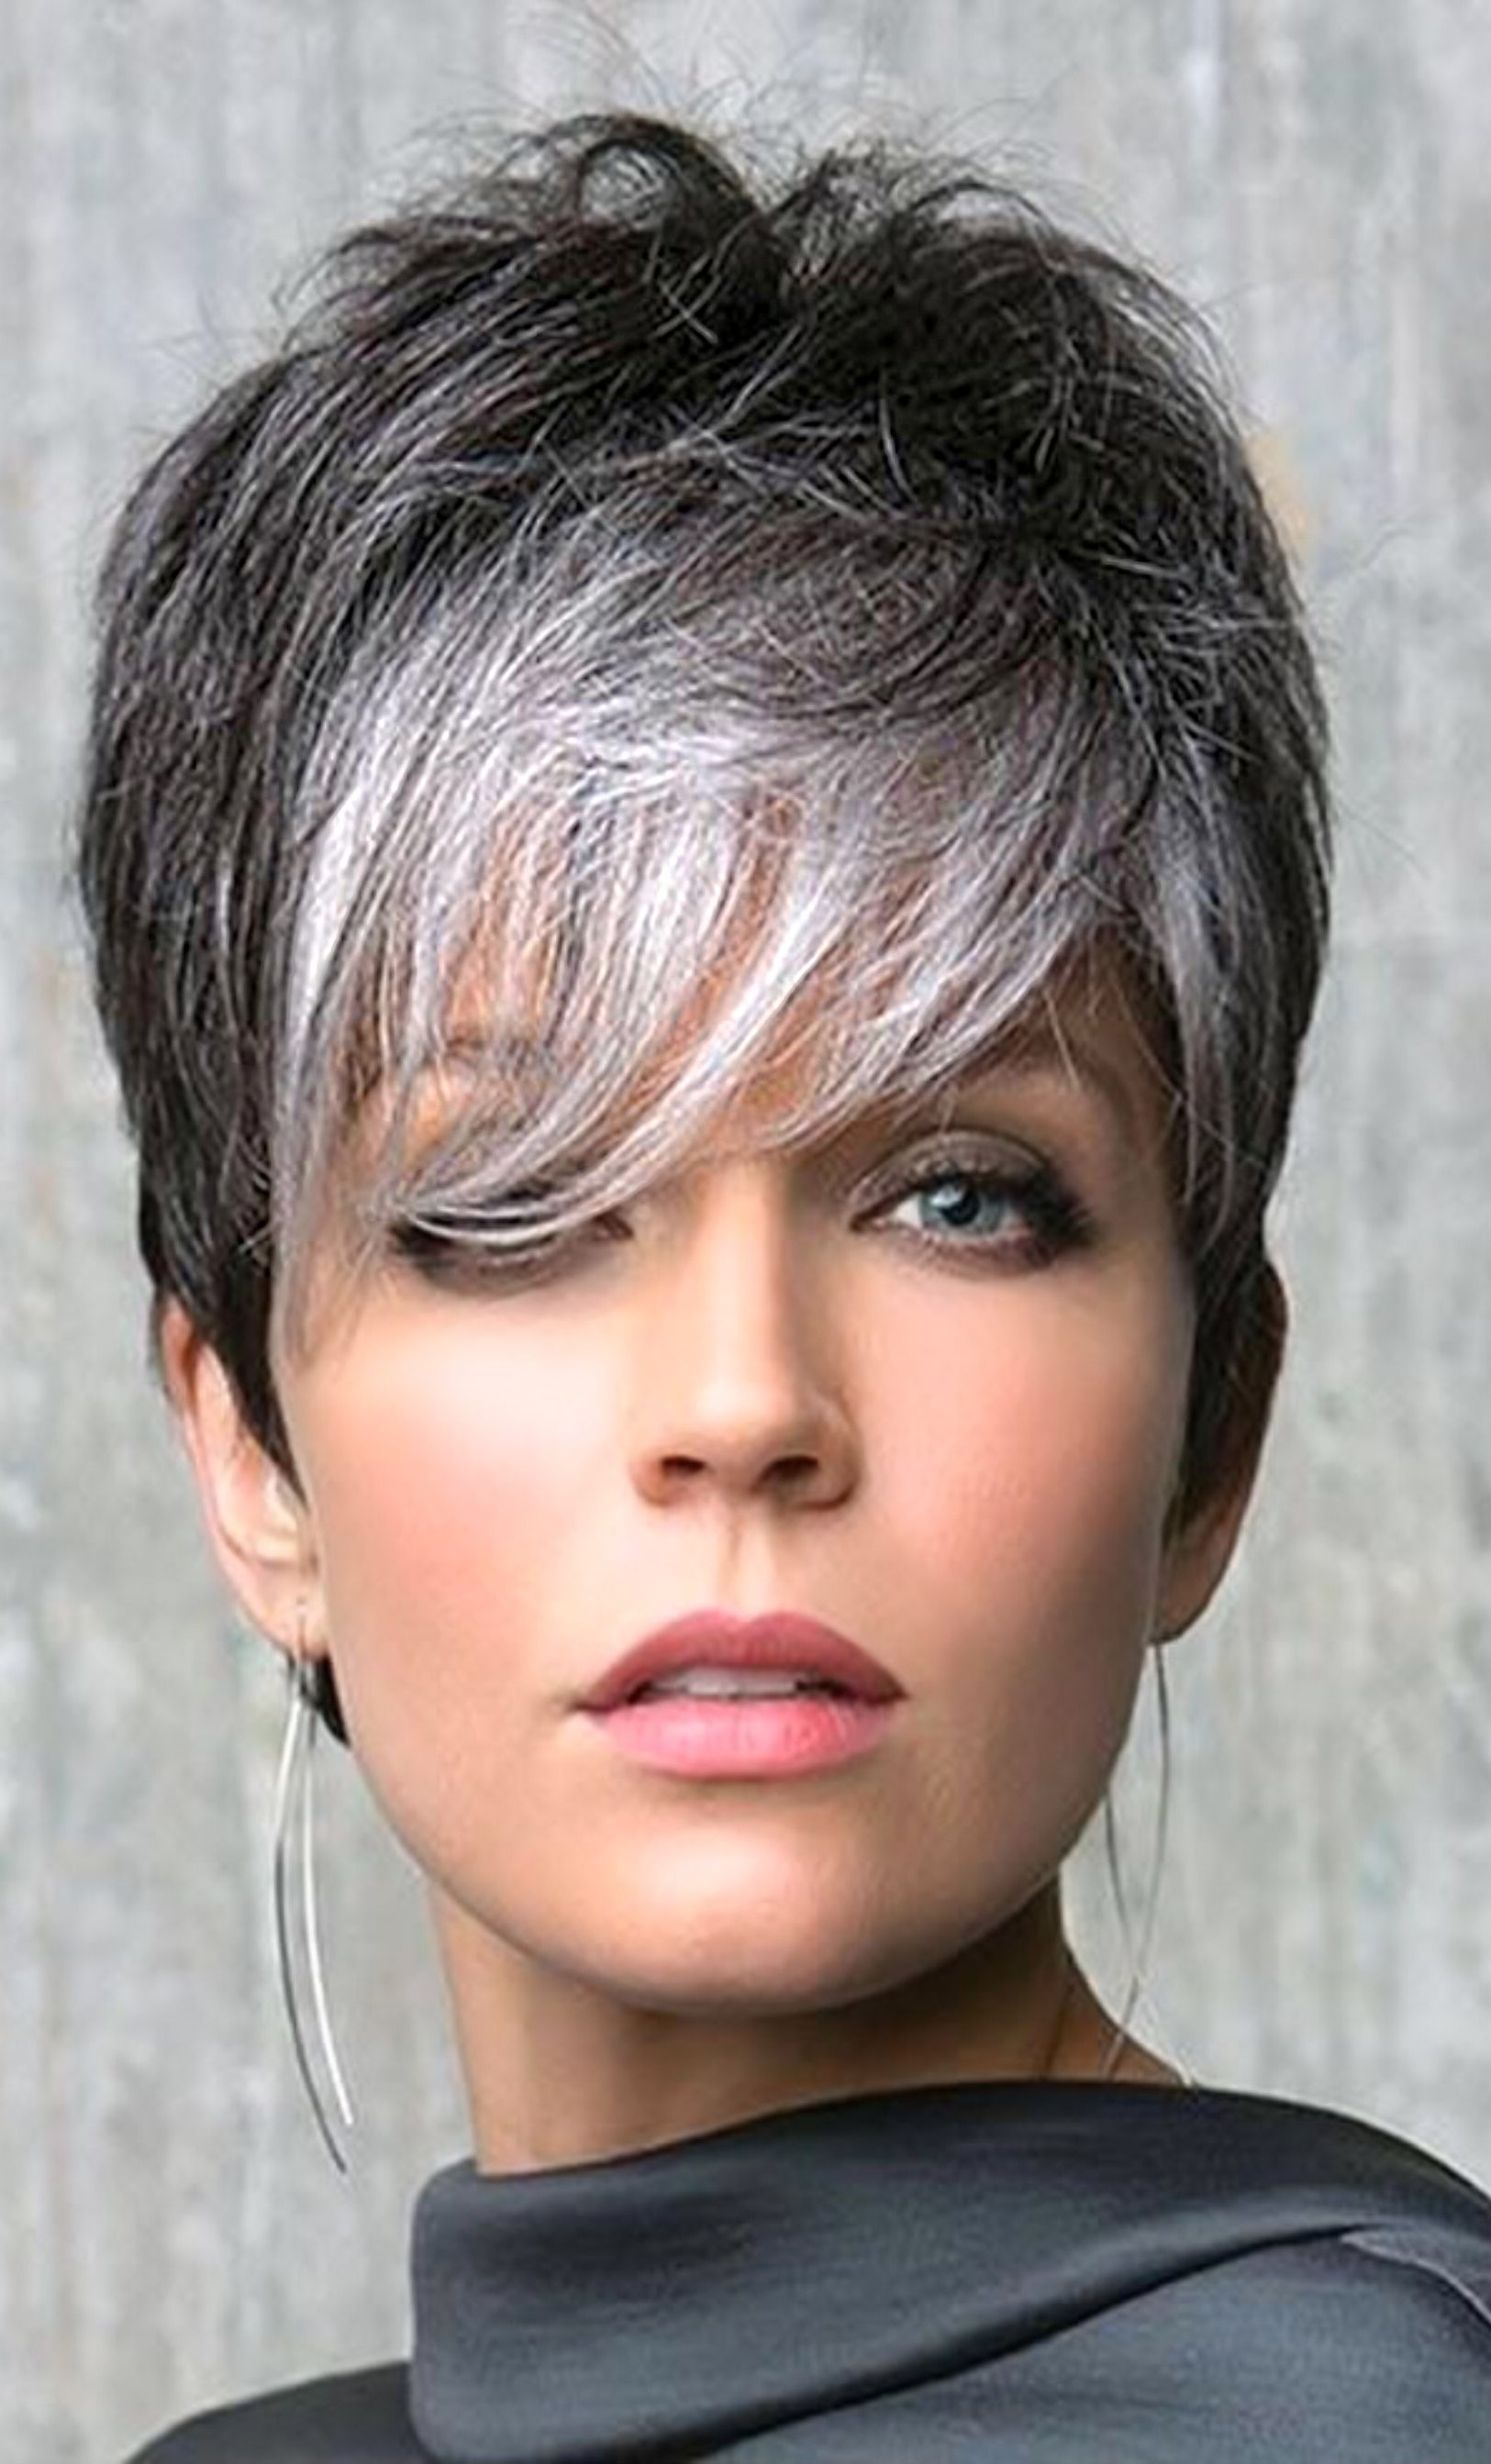 Pin by dee hill on hair styles pinterest hair style short hair